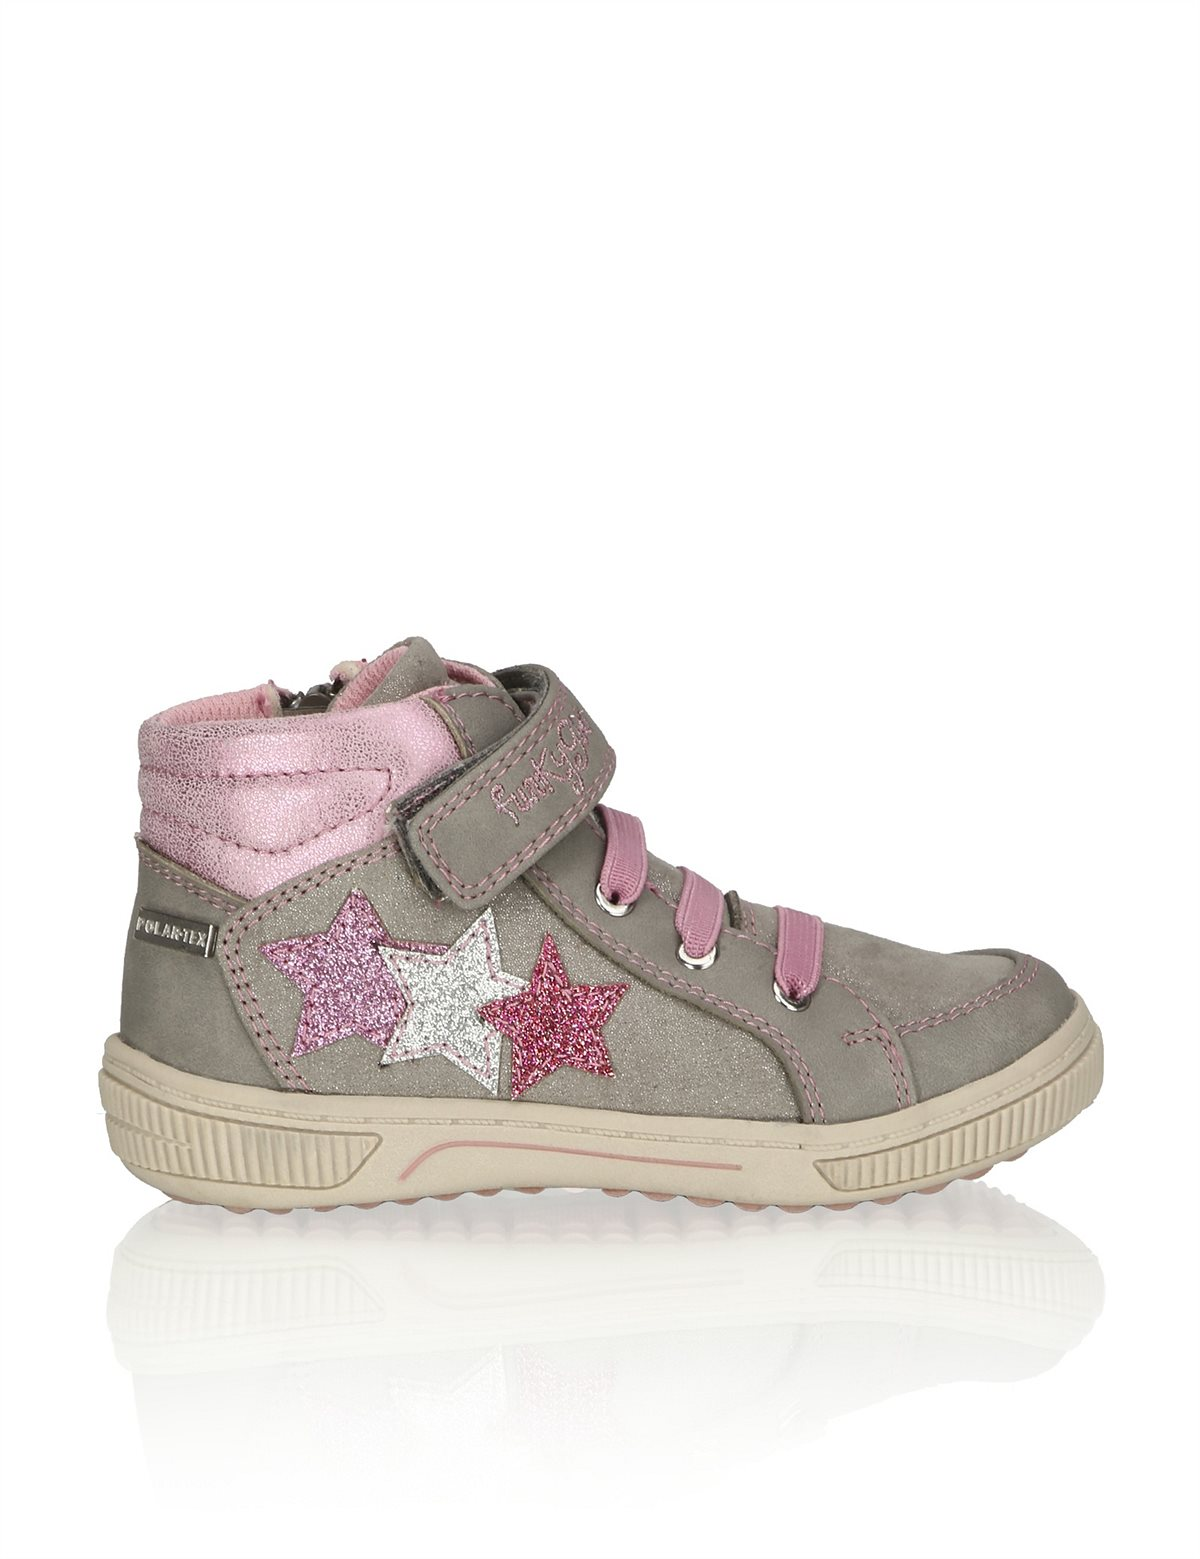 HUMANIC 04 Kids Funky Girls Boot ab EUR 34,95 ab Ende Juli 3223505944